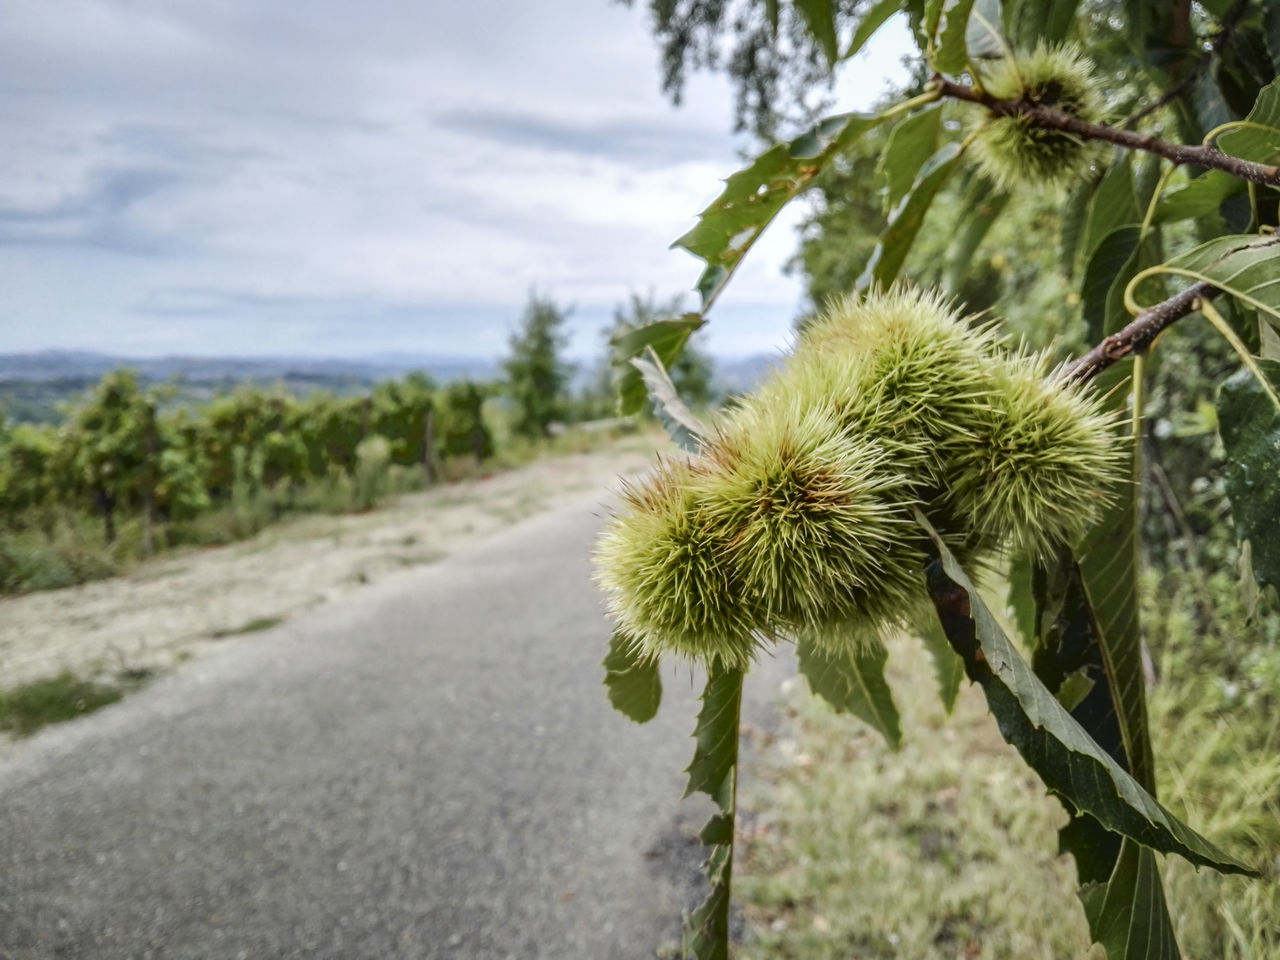 Beauty In Nature Botany Chestnut Close-up Cloud - Sky Focus On Foreground Green Growing Growth Italy Nature No People Outdoors Piedmont Piemonte Plant Selective Focus Tranquility